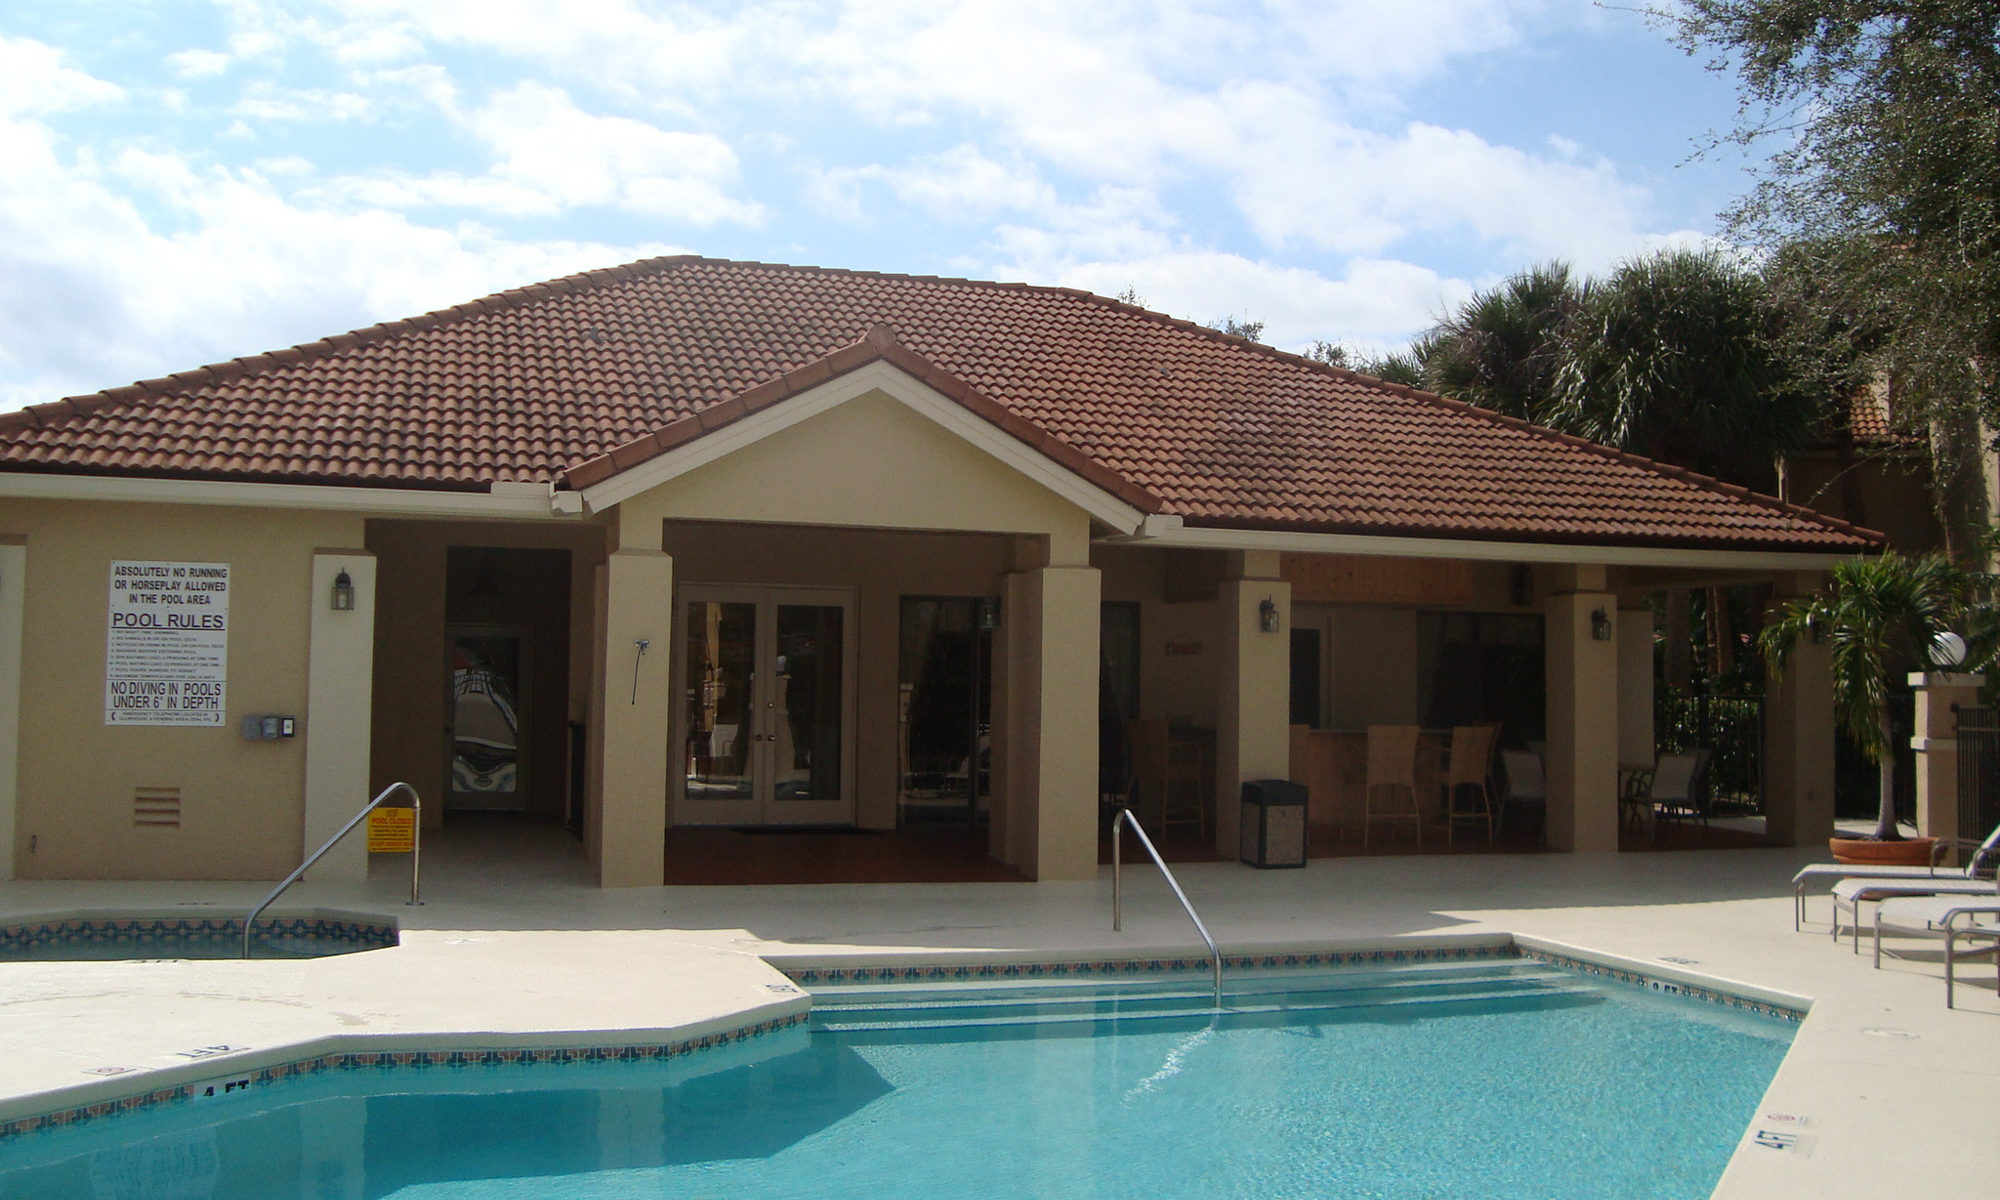 07 Mariners Cove 2000x1200 - Mariners Cove Palm Beach Gardens For Sale